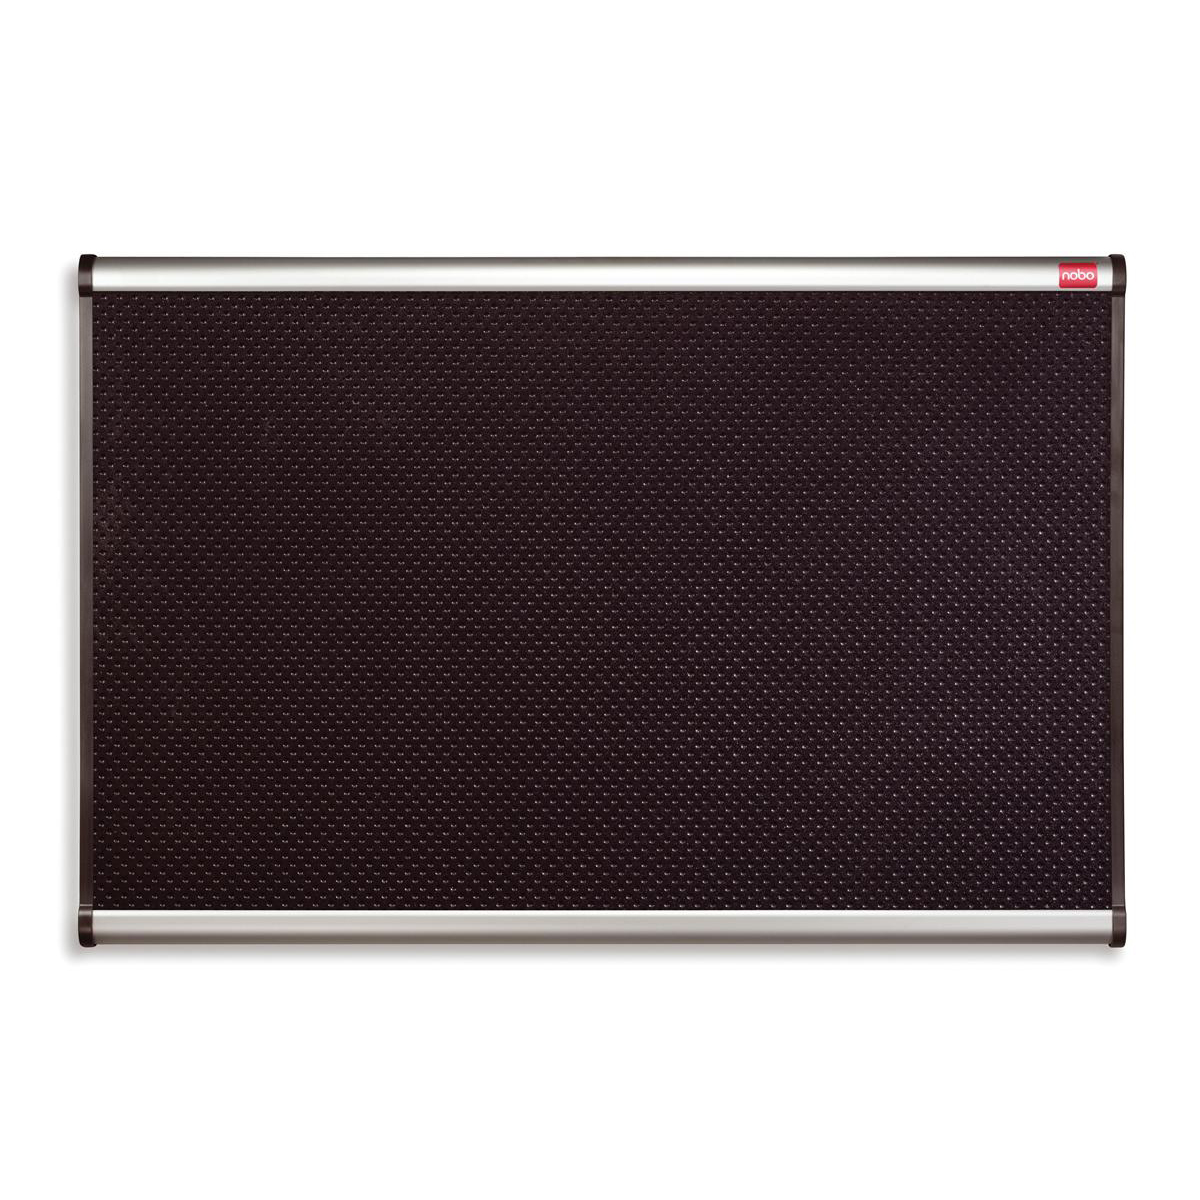 Nobo Prestige Noticeboard High-density Foam with Aluminium Finish W900xH600mm Black Ref QBPF9060